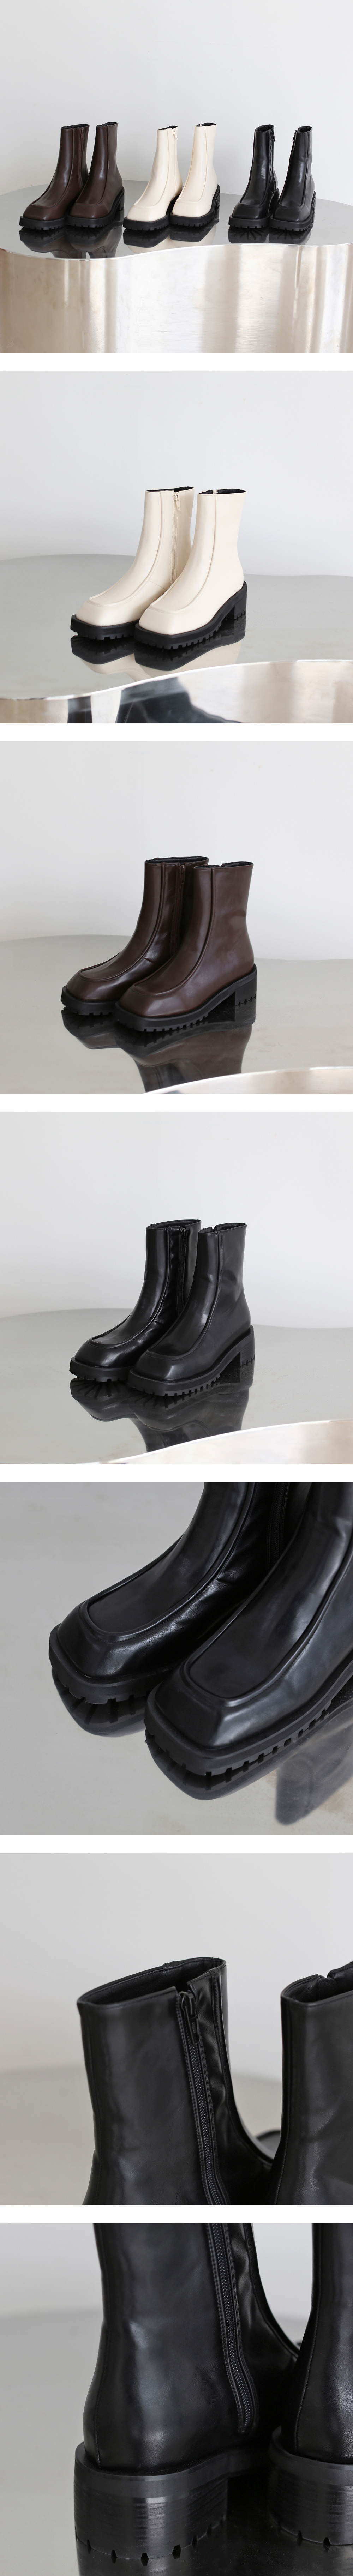 Schaefer Square Ankle Boots